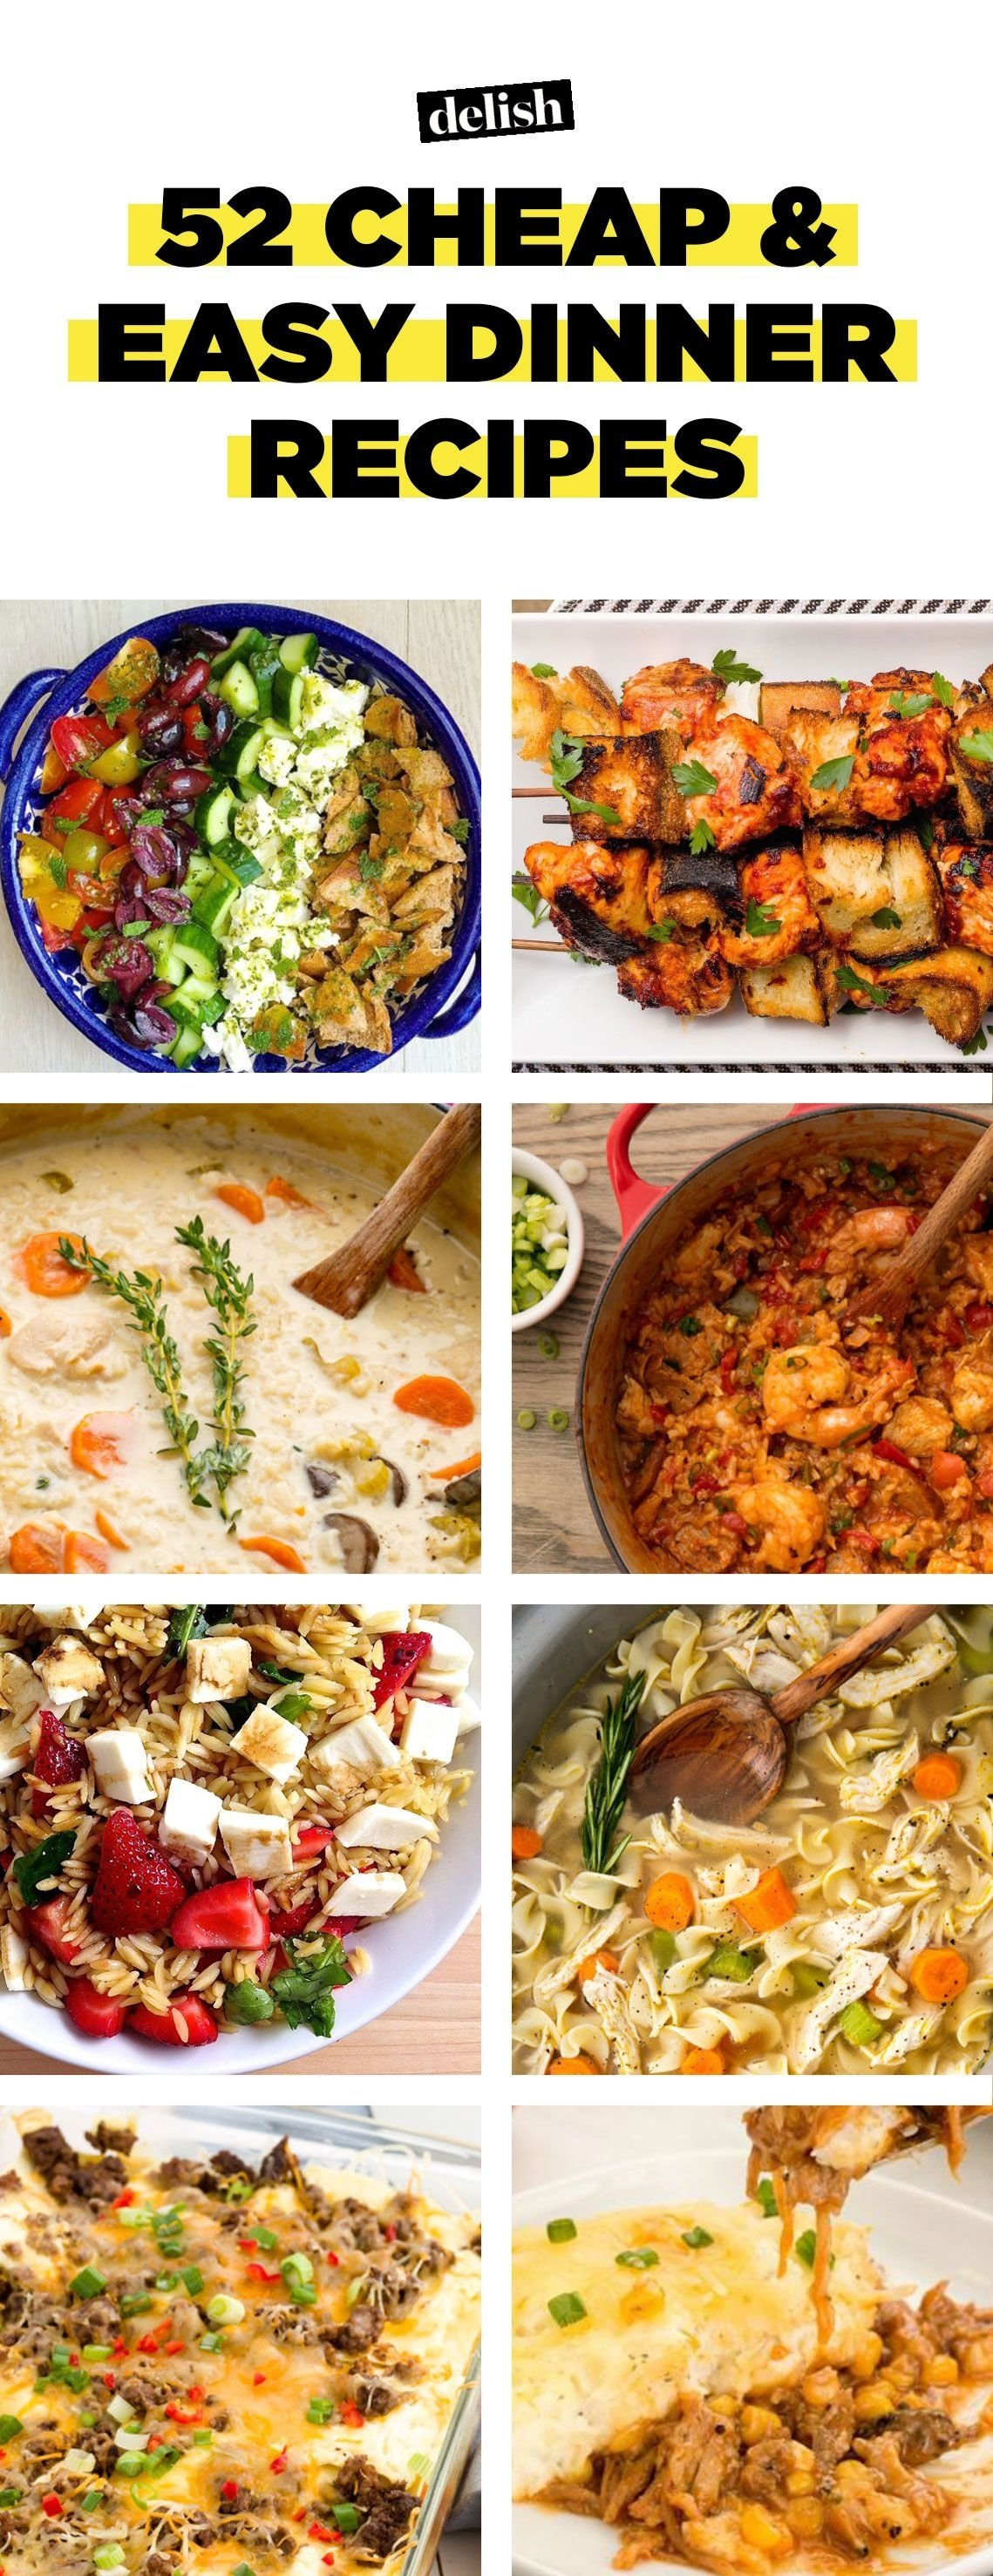 10 Beautiful Cheap And Easy Meal Ideas 52 easy cheap recipes inexpensive food ideas delish 6 2020